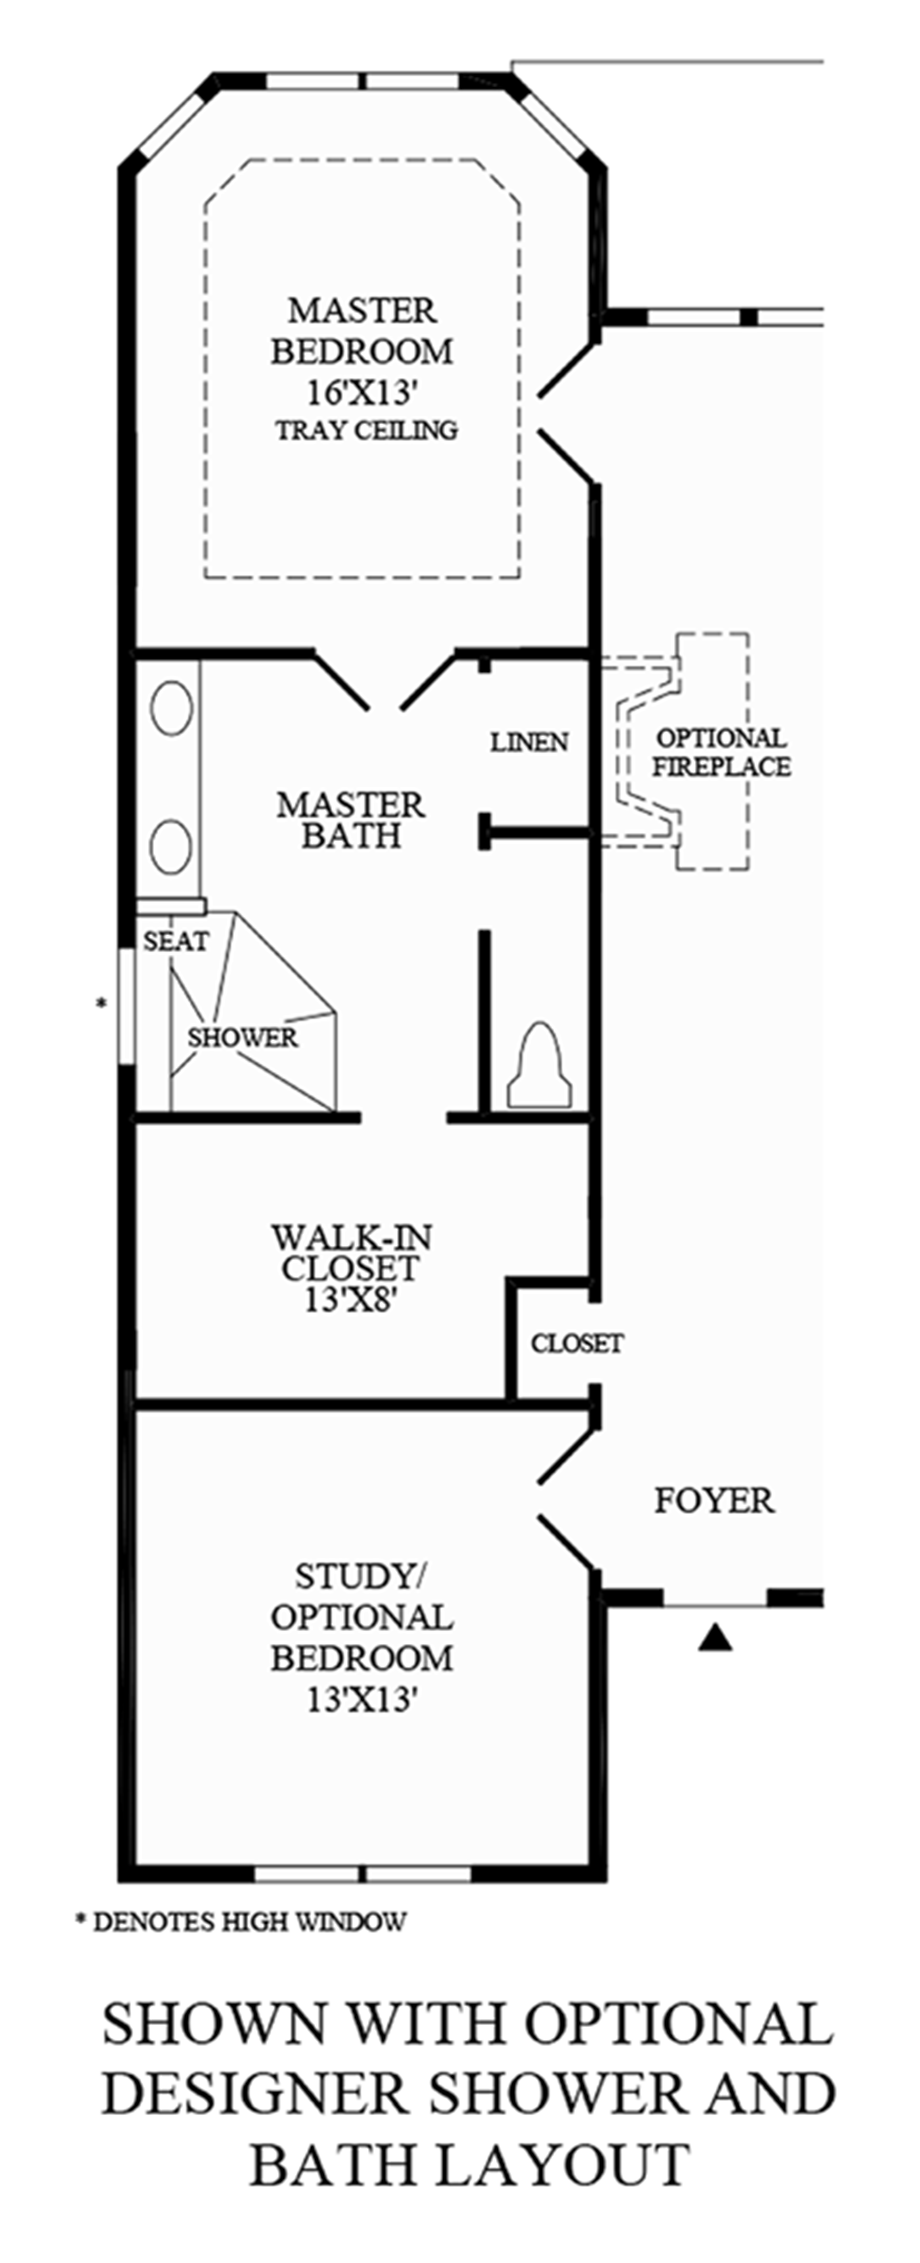 Optional Designer Shower and Bath Layout Floor Plan